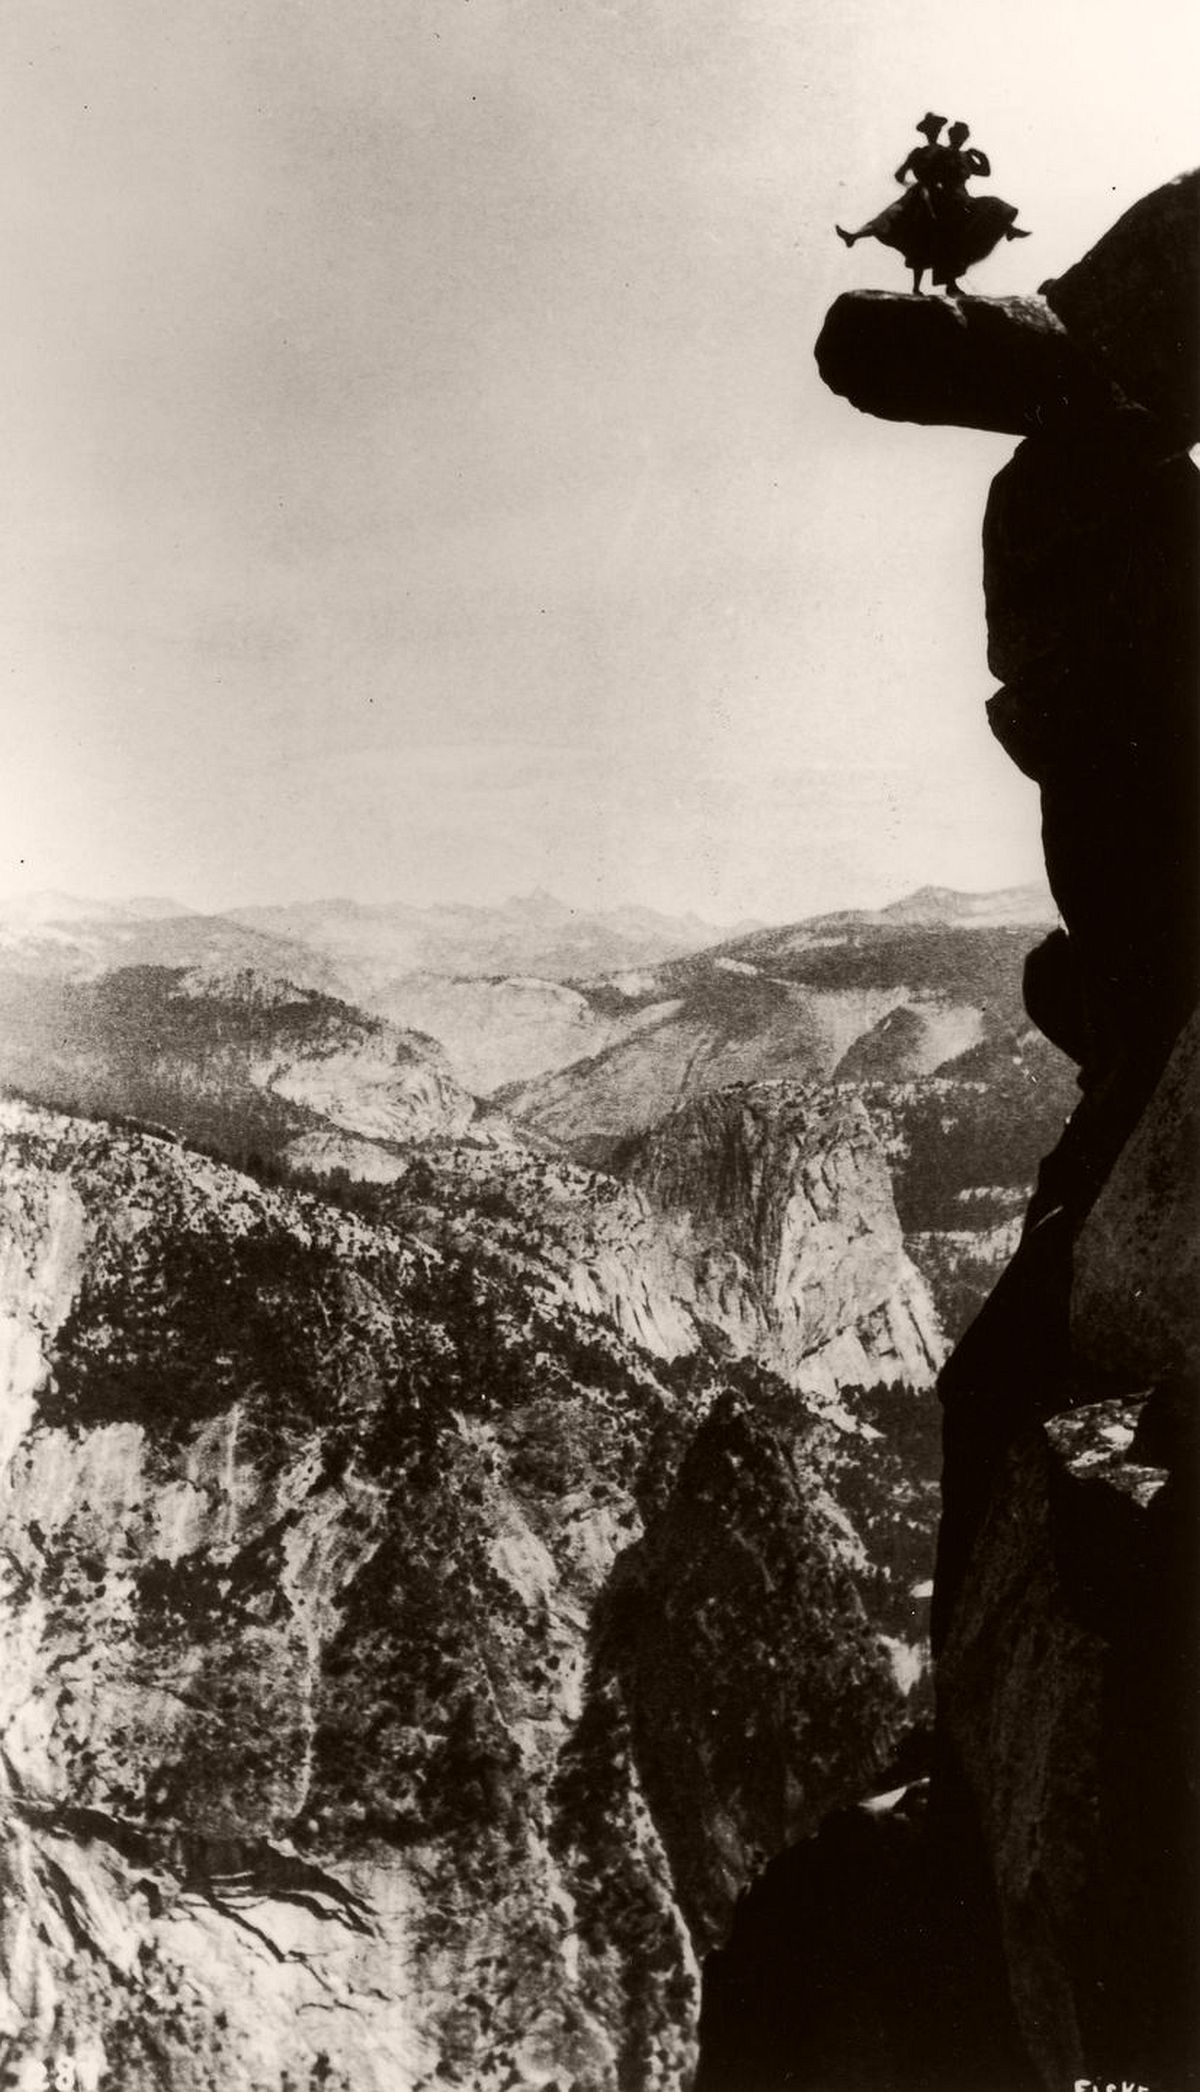 Kitty Tatch and friend dance on the overhanging rock at Glacier Point in Yosemite, c.1890. (Fotosearch/Getty Images)